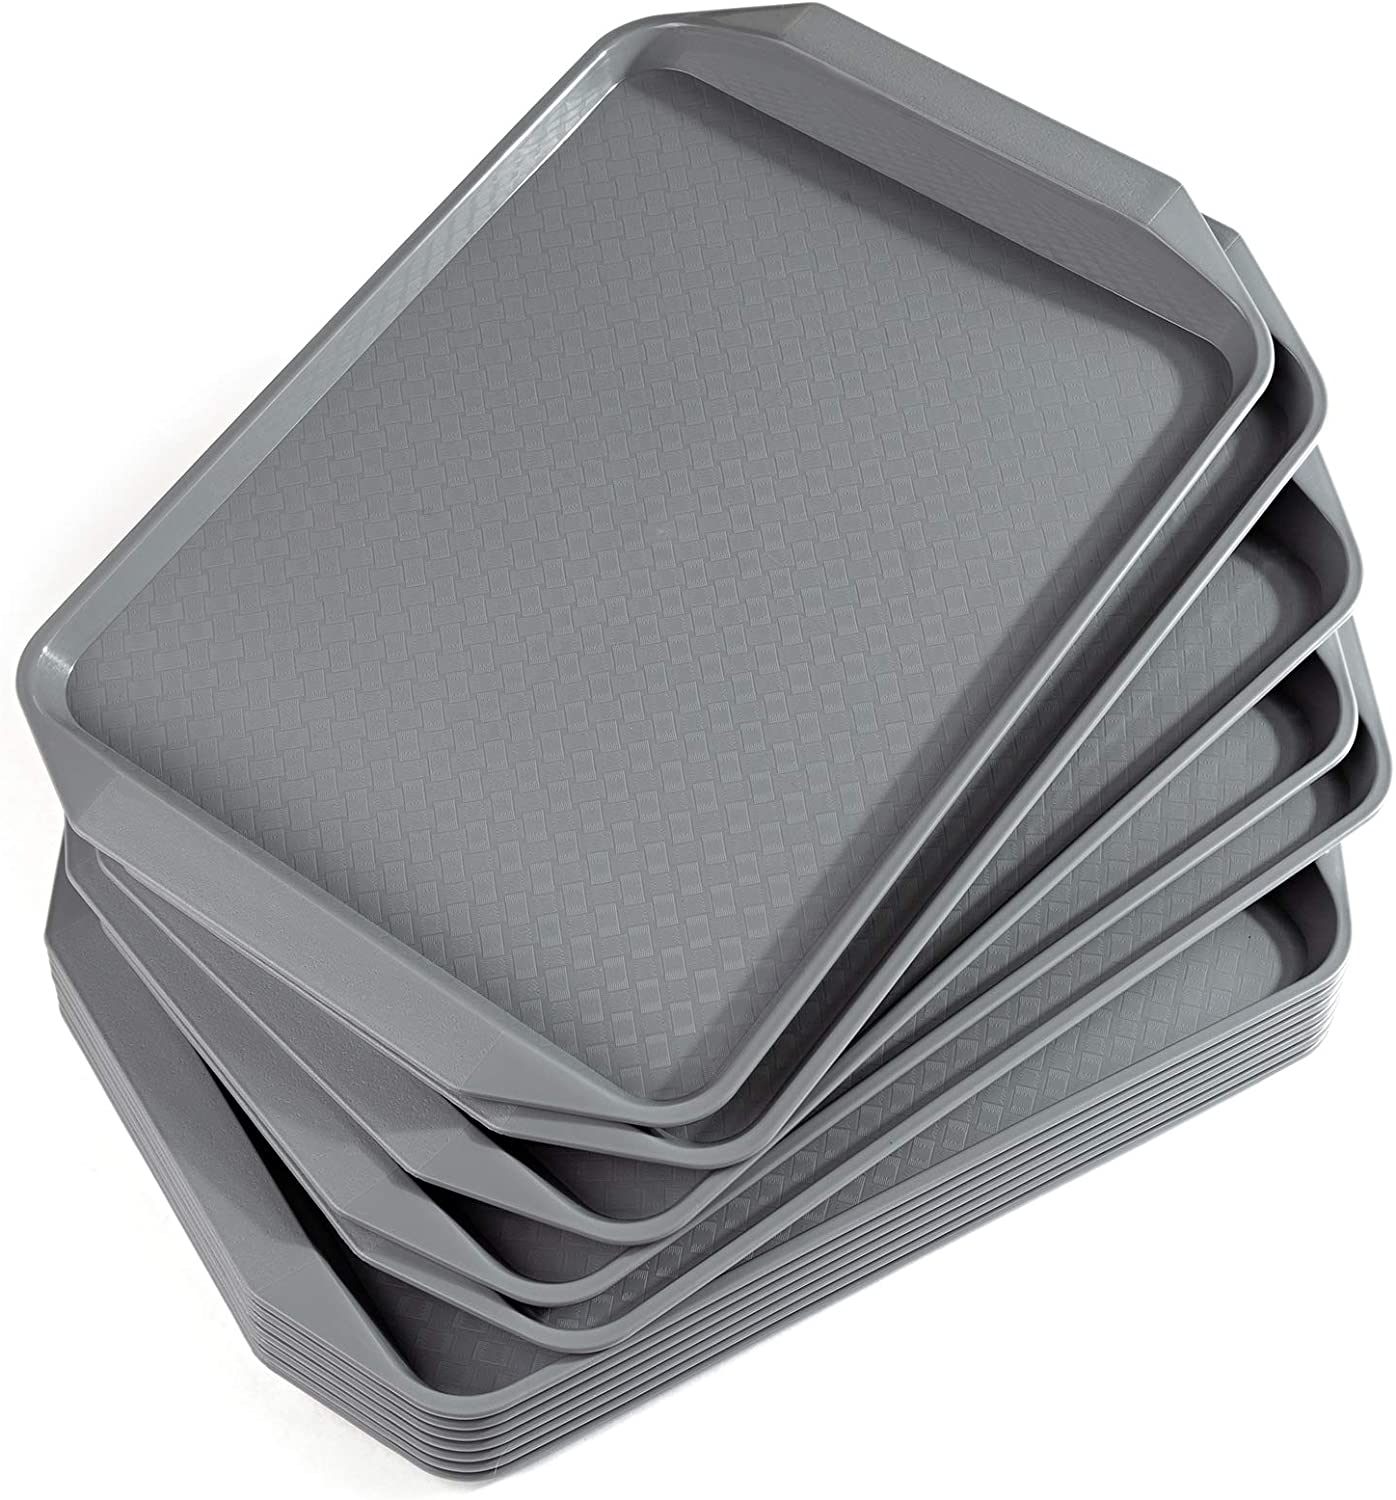 Aebeky Plastic Fast Food Tray,16.7 by 11.8-Inch,Set of 12 (Grey)